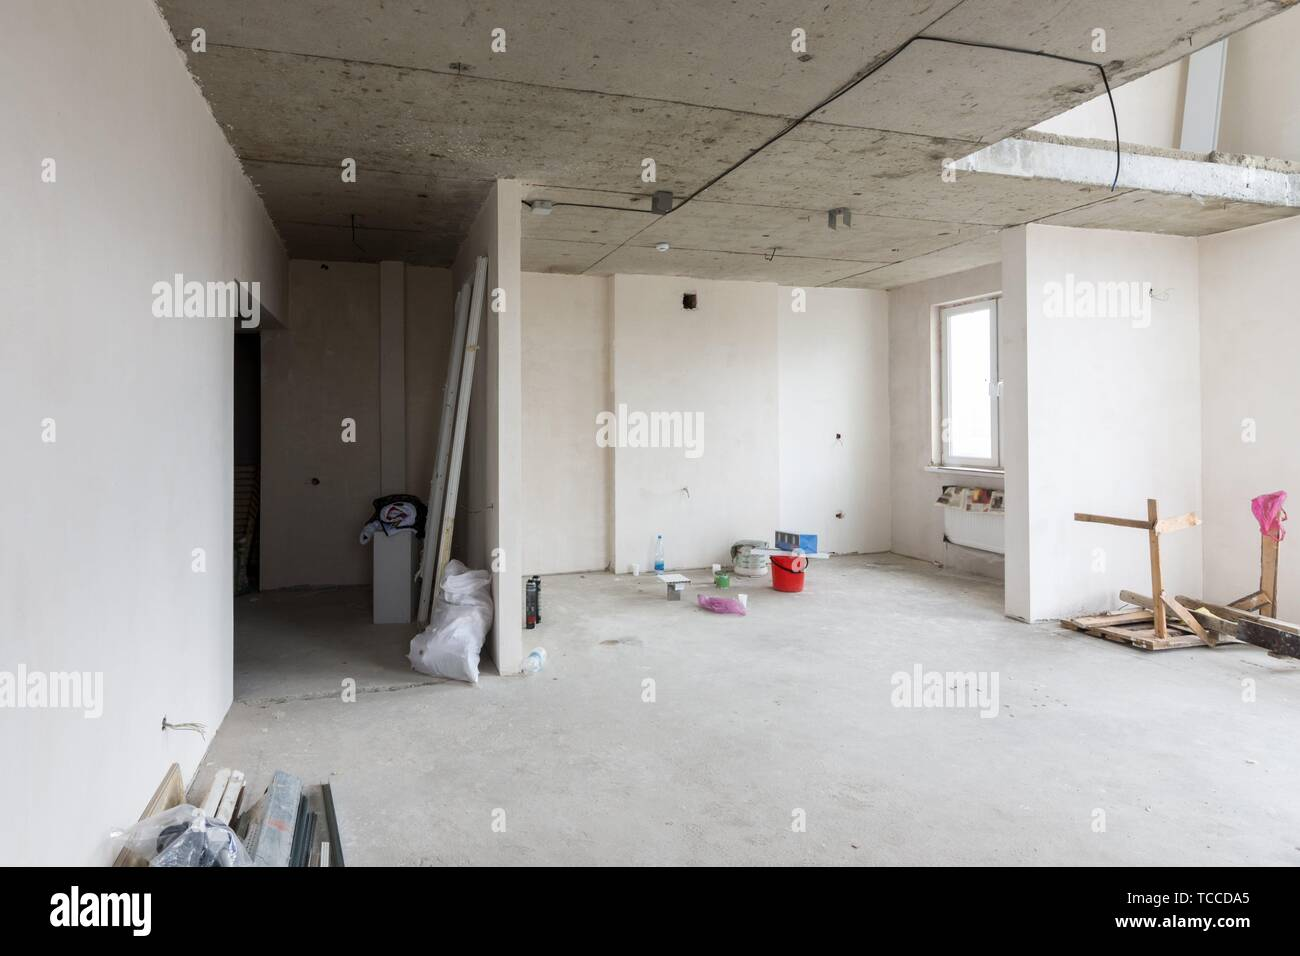 Repair in a two-story apartment in a new building. - Stock Image